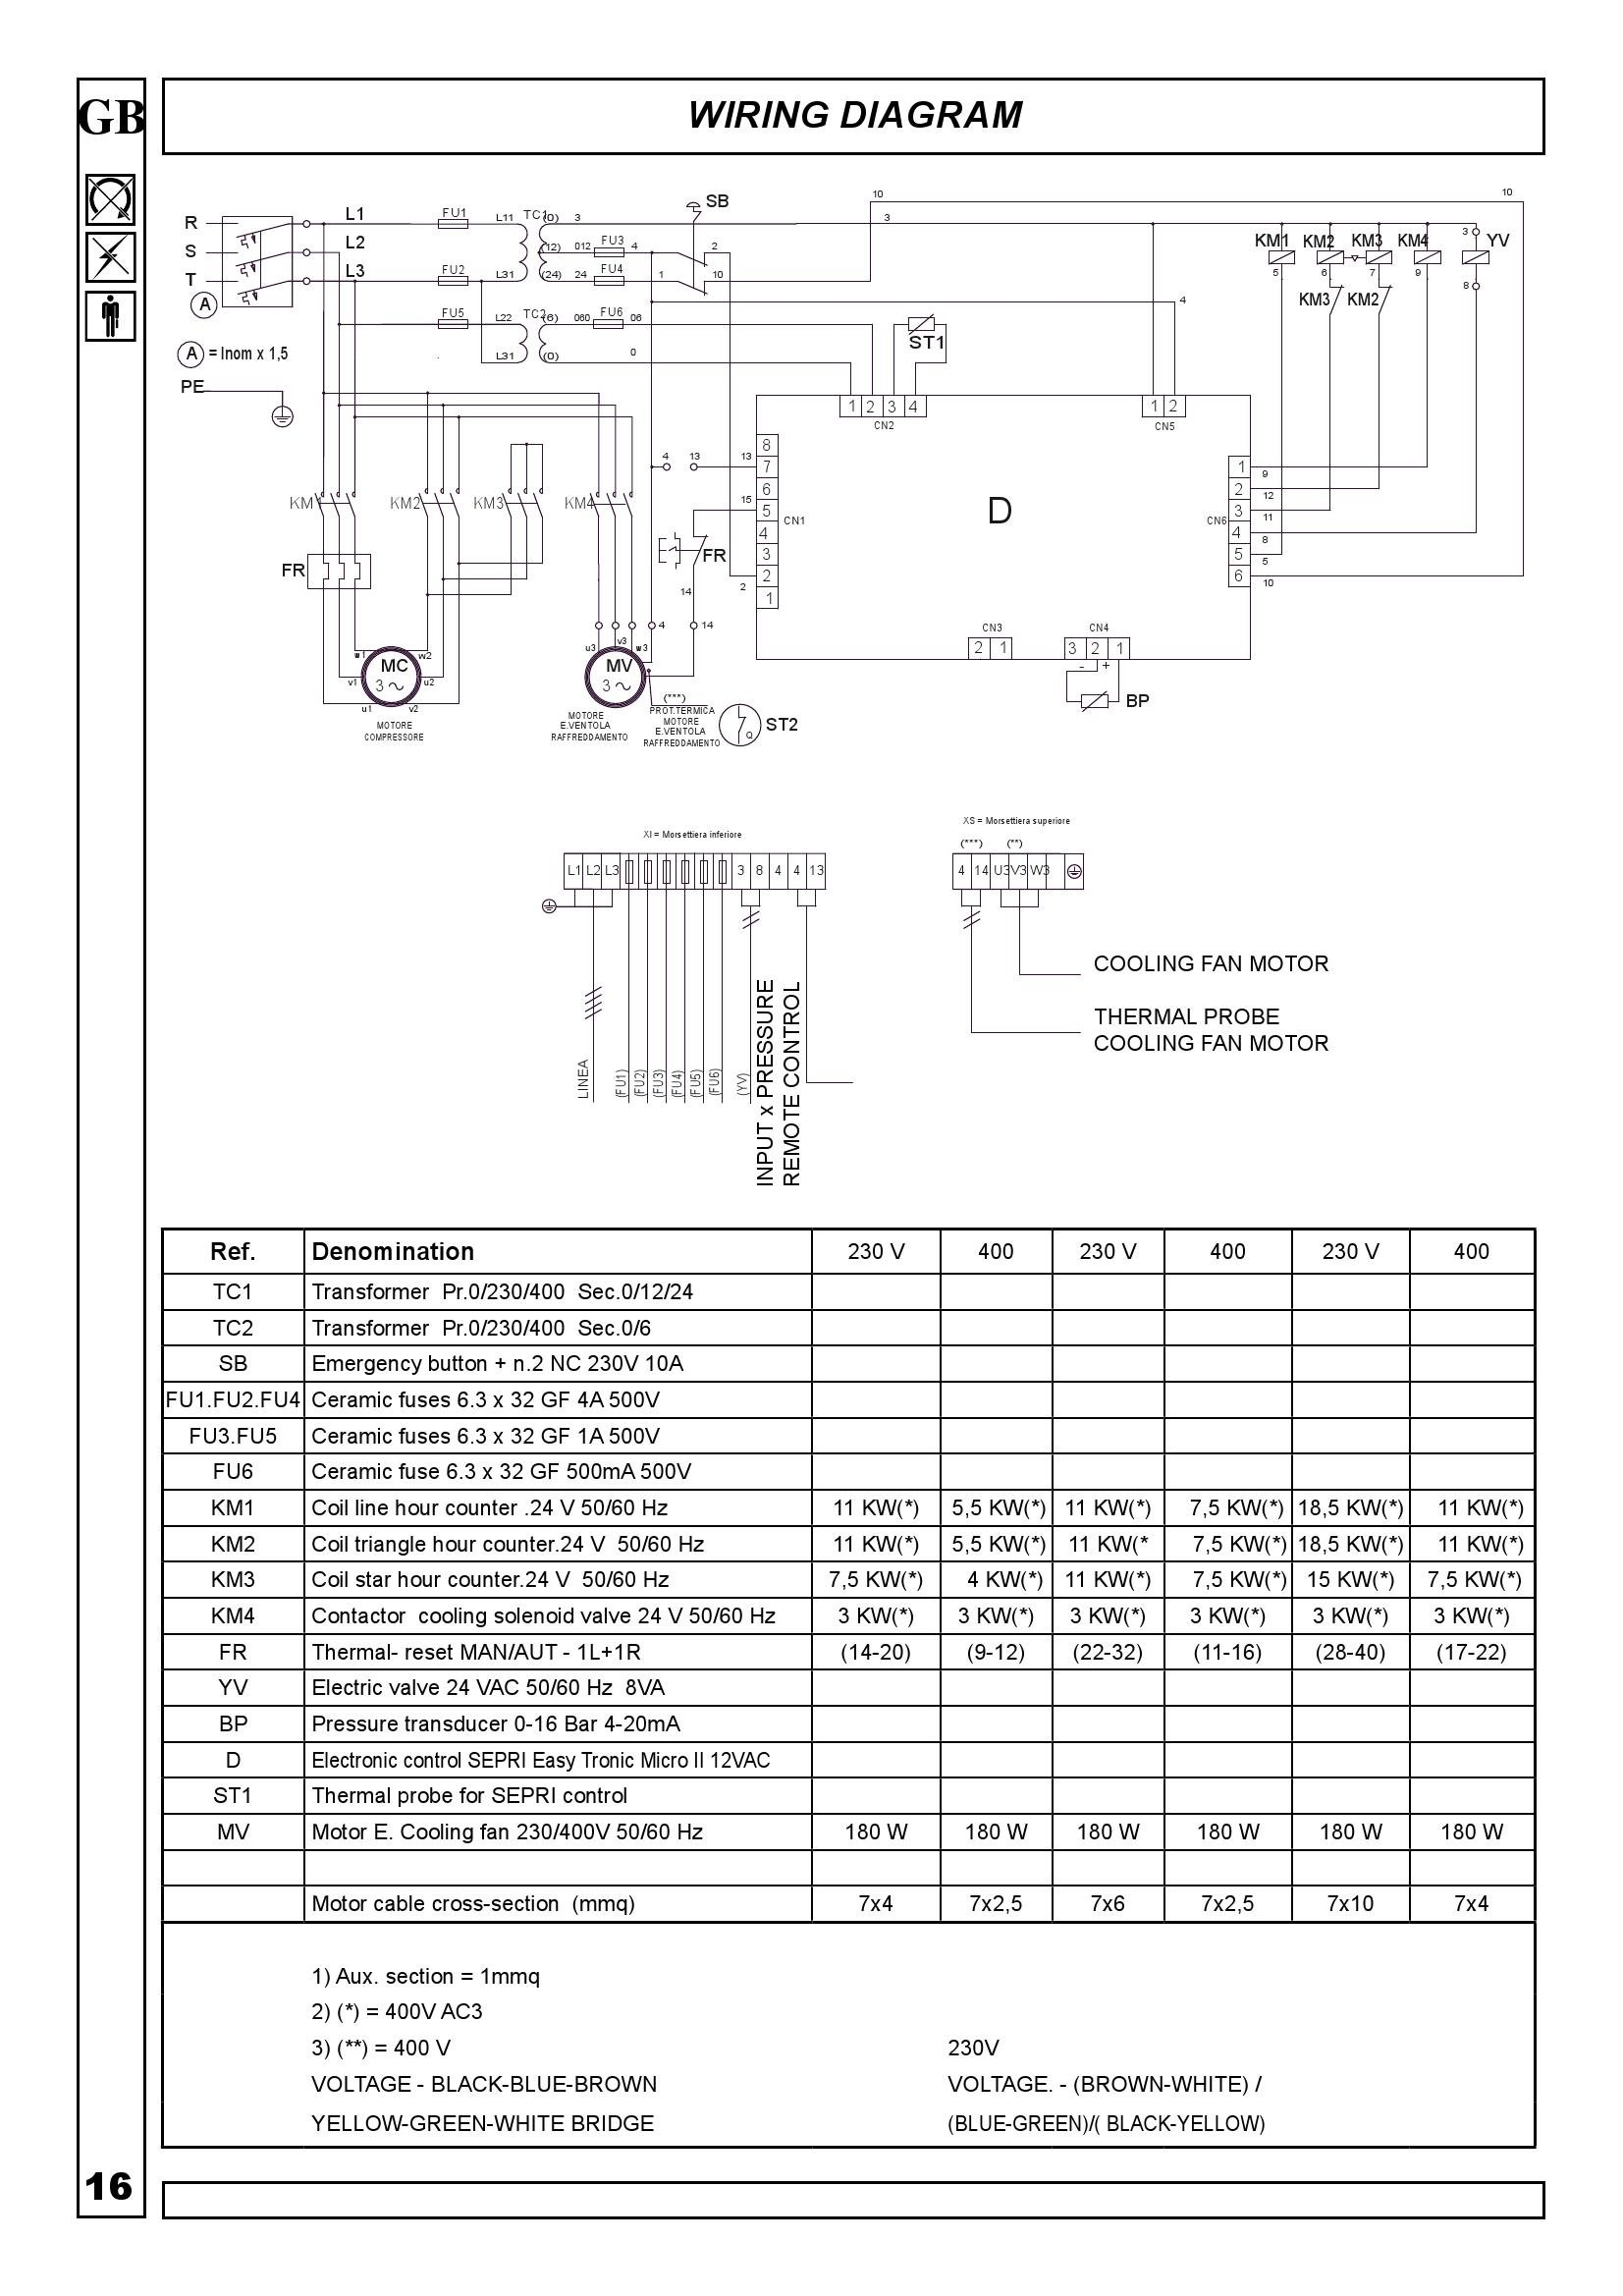 05231 wiring diagram 05231 saturn 1010 500f screw compressor wiring diagram compressor wiring diagram at bayanpartner.co